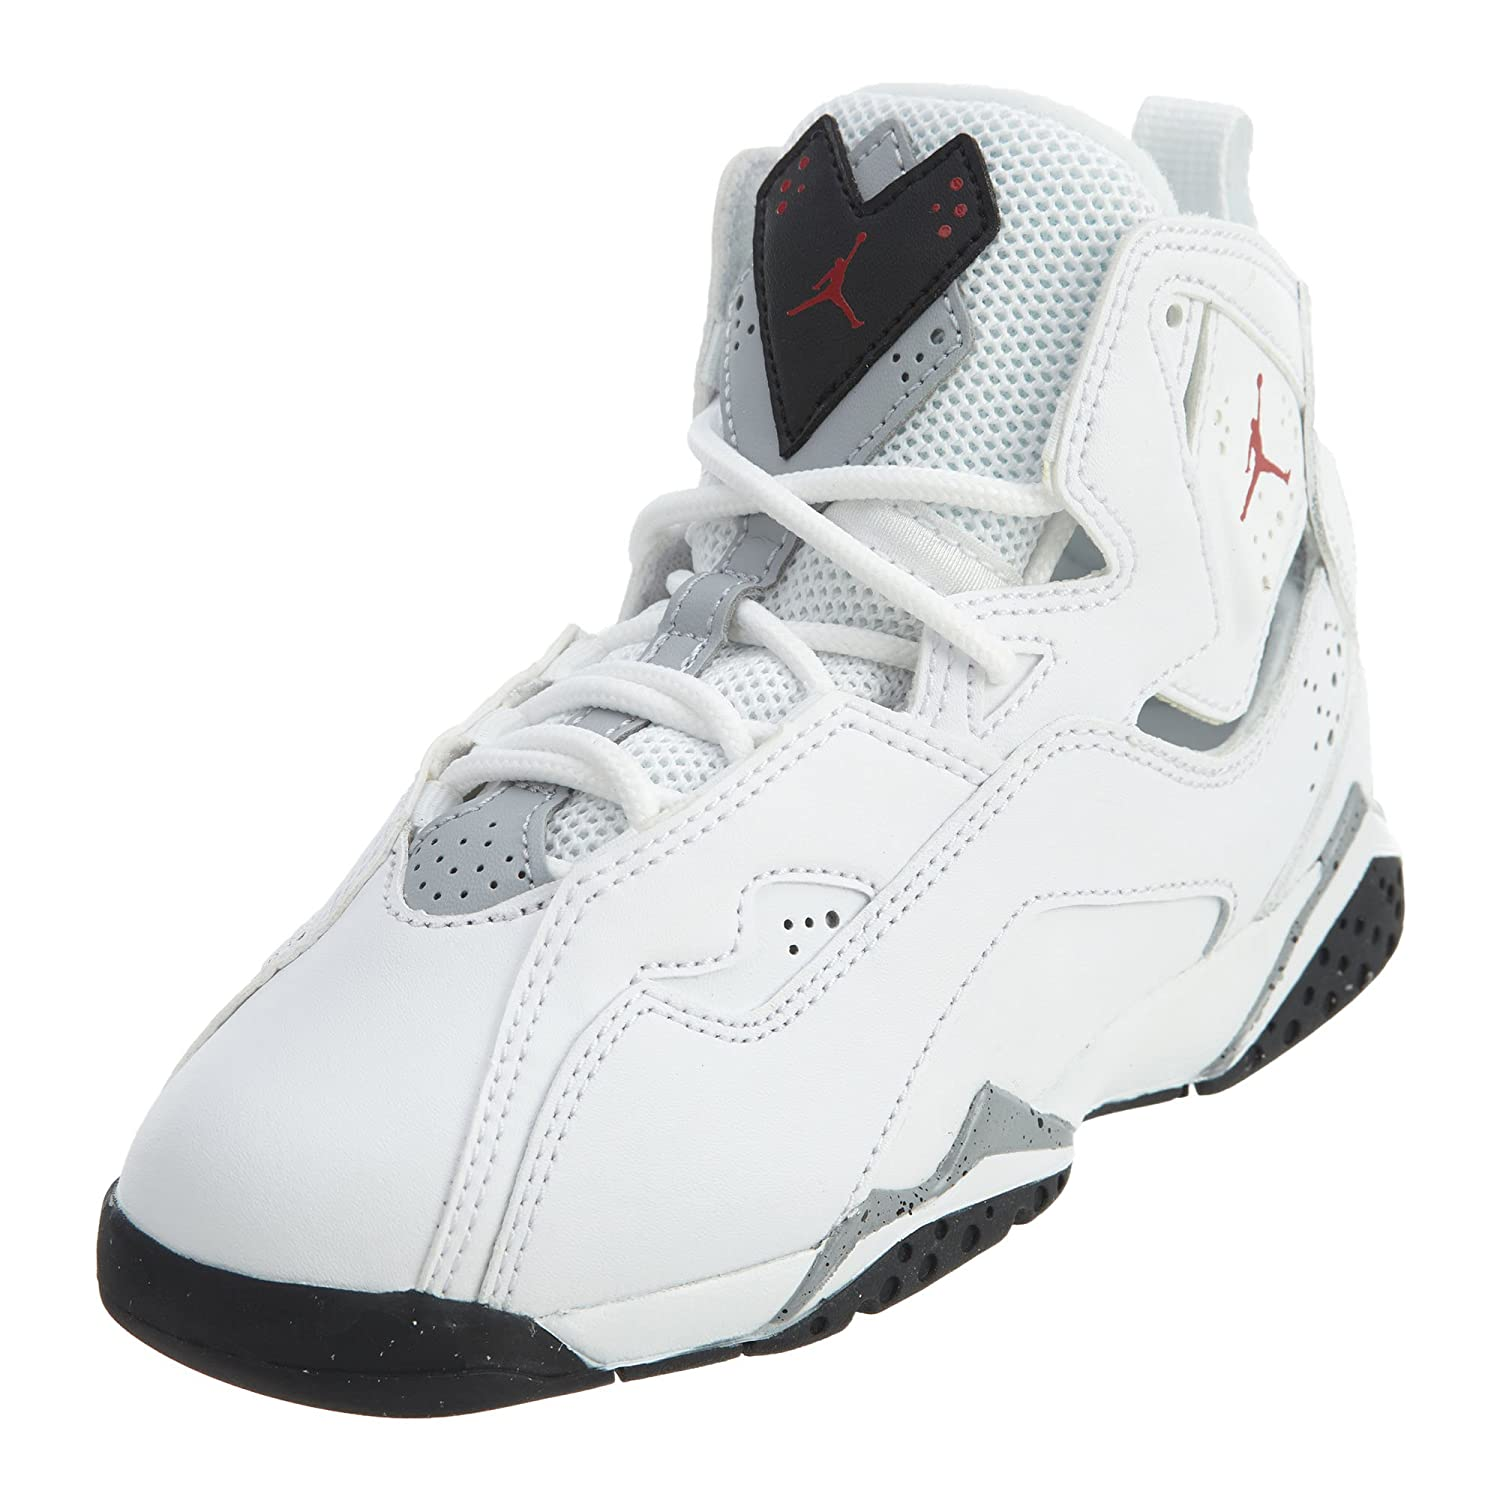 71423a0c1efe3 Amazon.com | Nike Boy's Jordan True Flight Basketball Shoe (PS ...